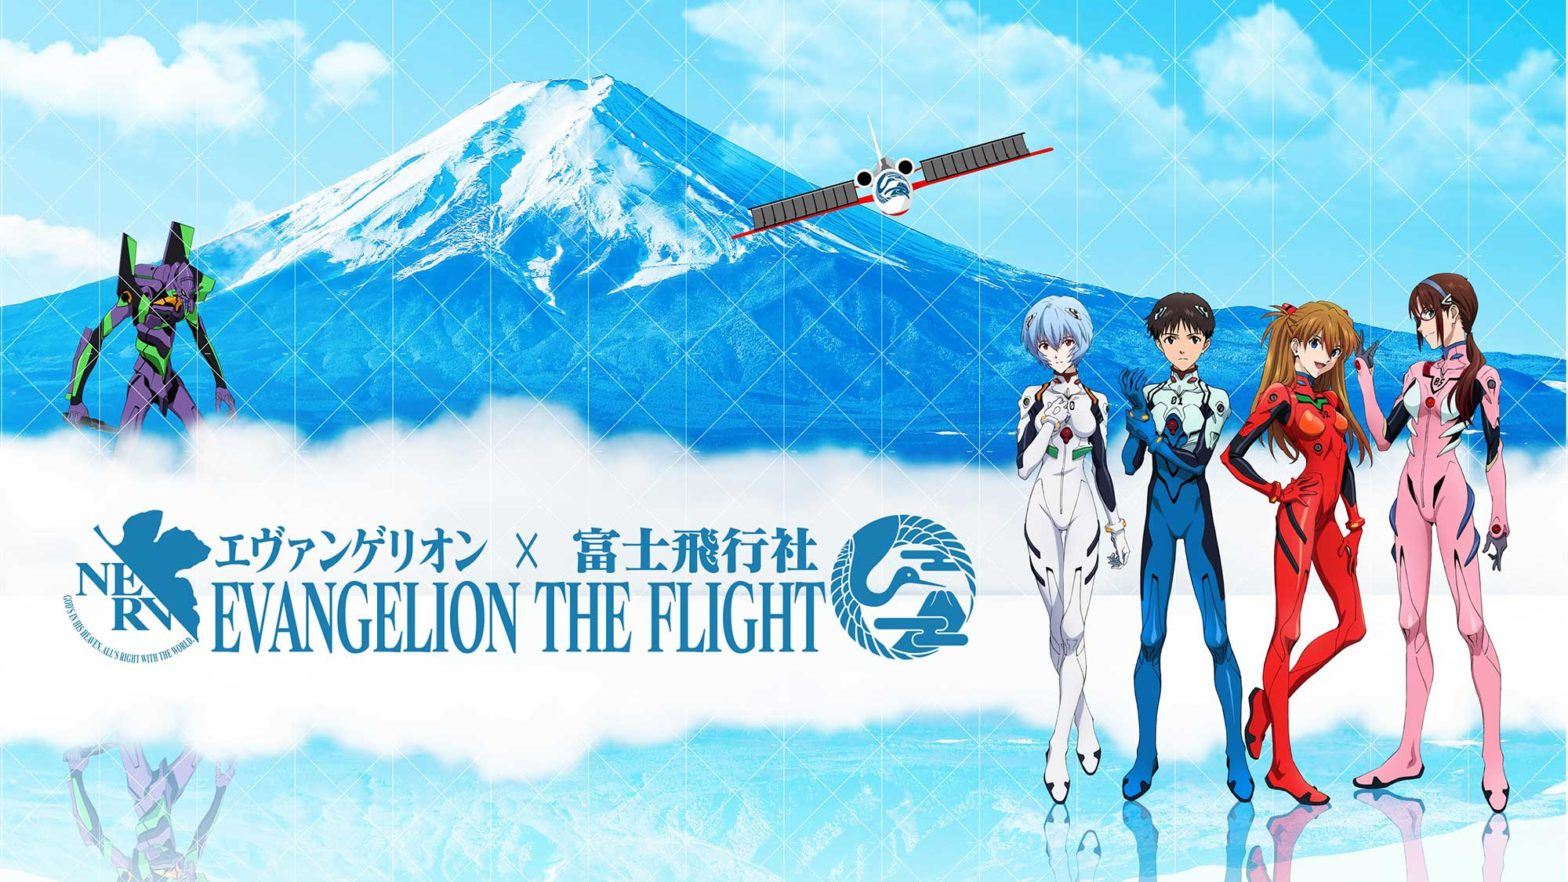 Fuji Flying Company Evangelion The Flight